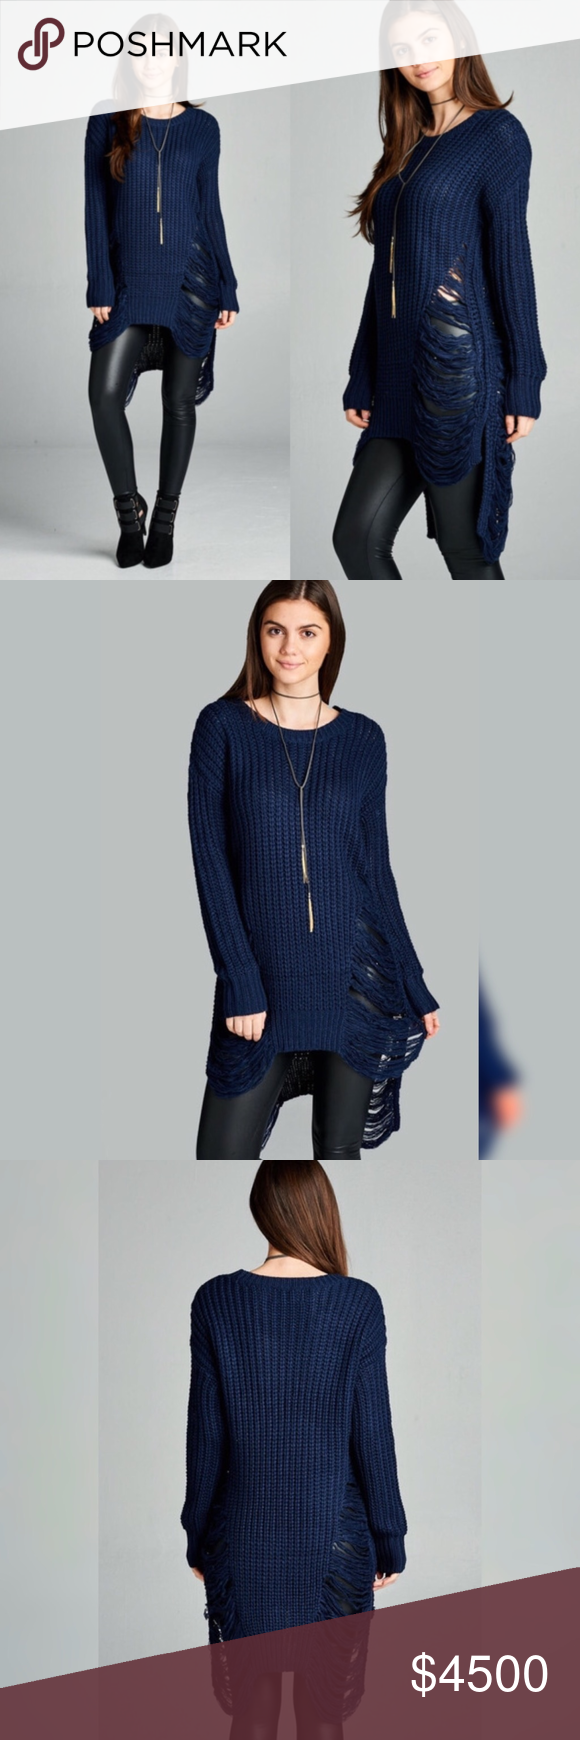 Navy Knit Frayed Long Tunic Sweater Coming ❣️Navy Knit Frayed Long Tunic Swe…